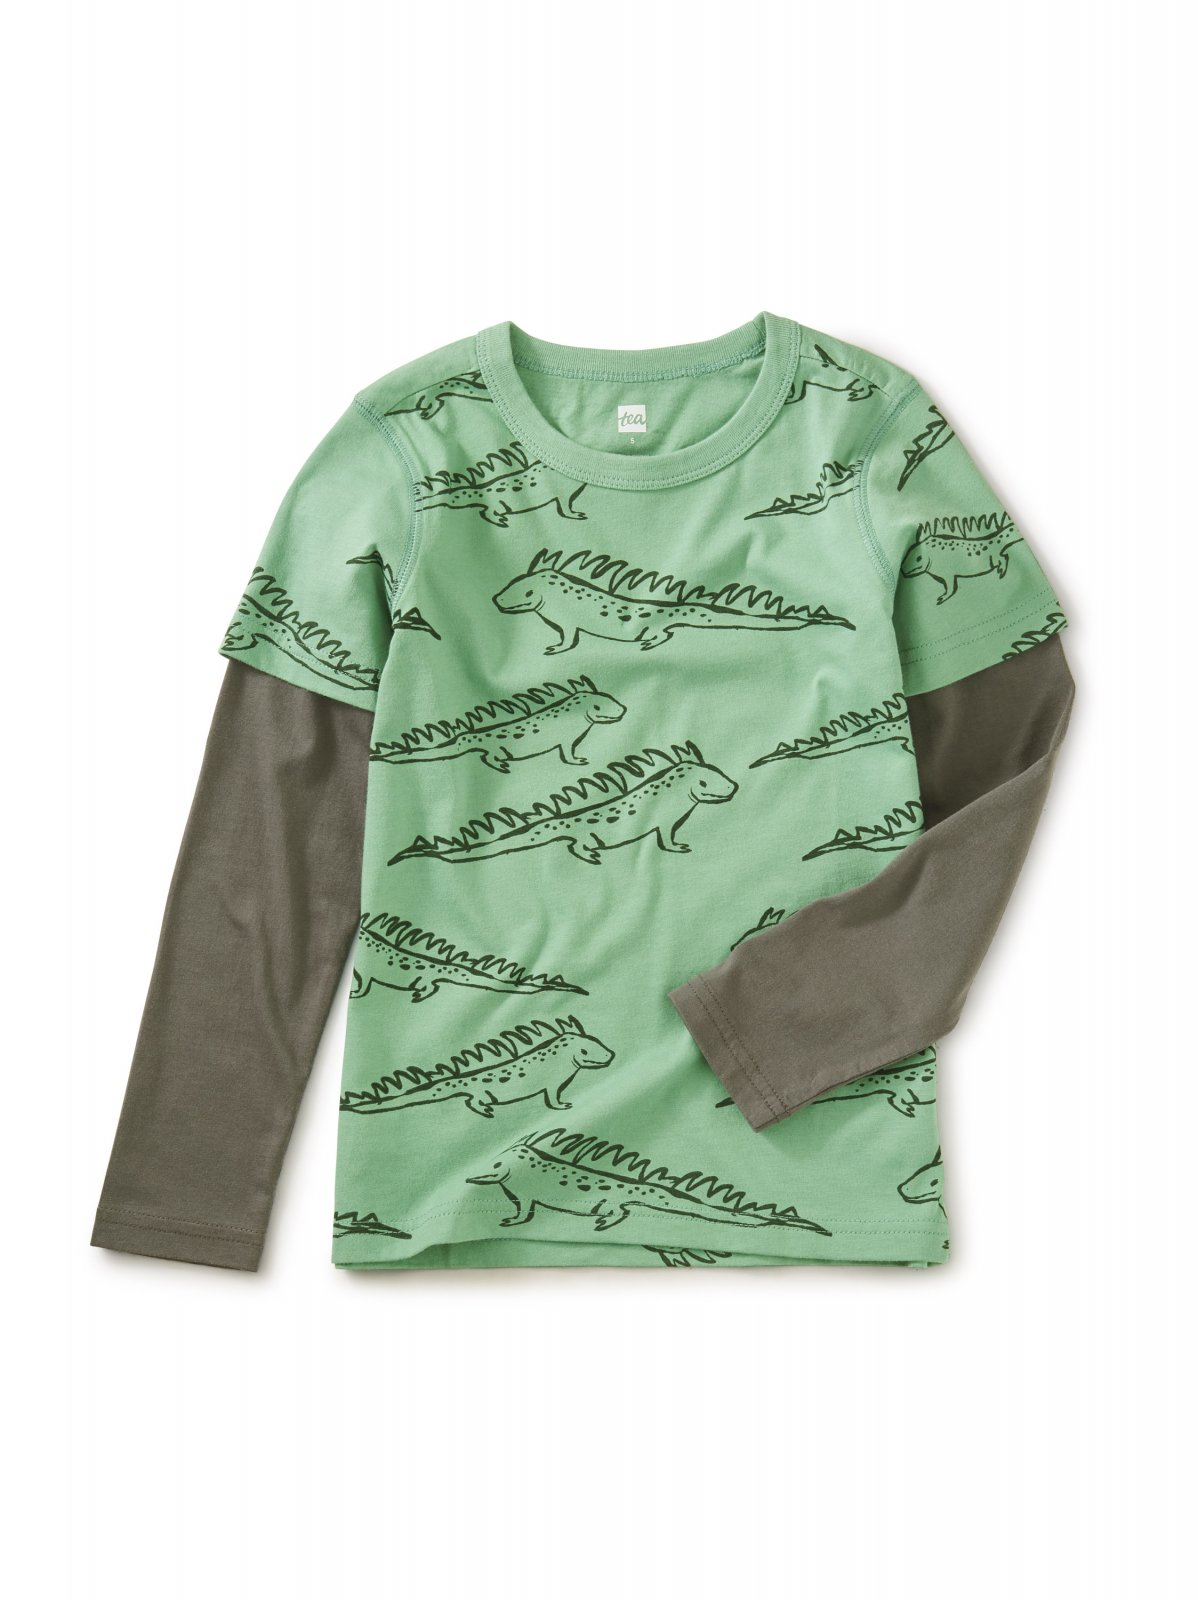 Printed Layered Long Sleeve Tee in Iguana Print by Tea Collection